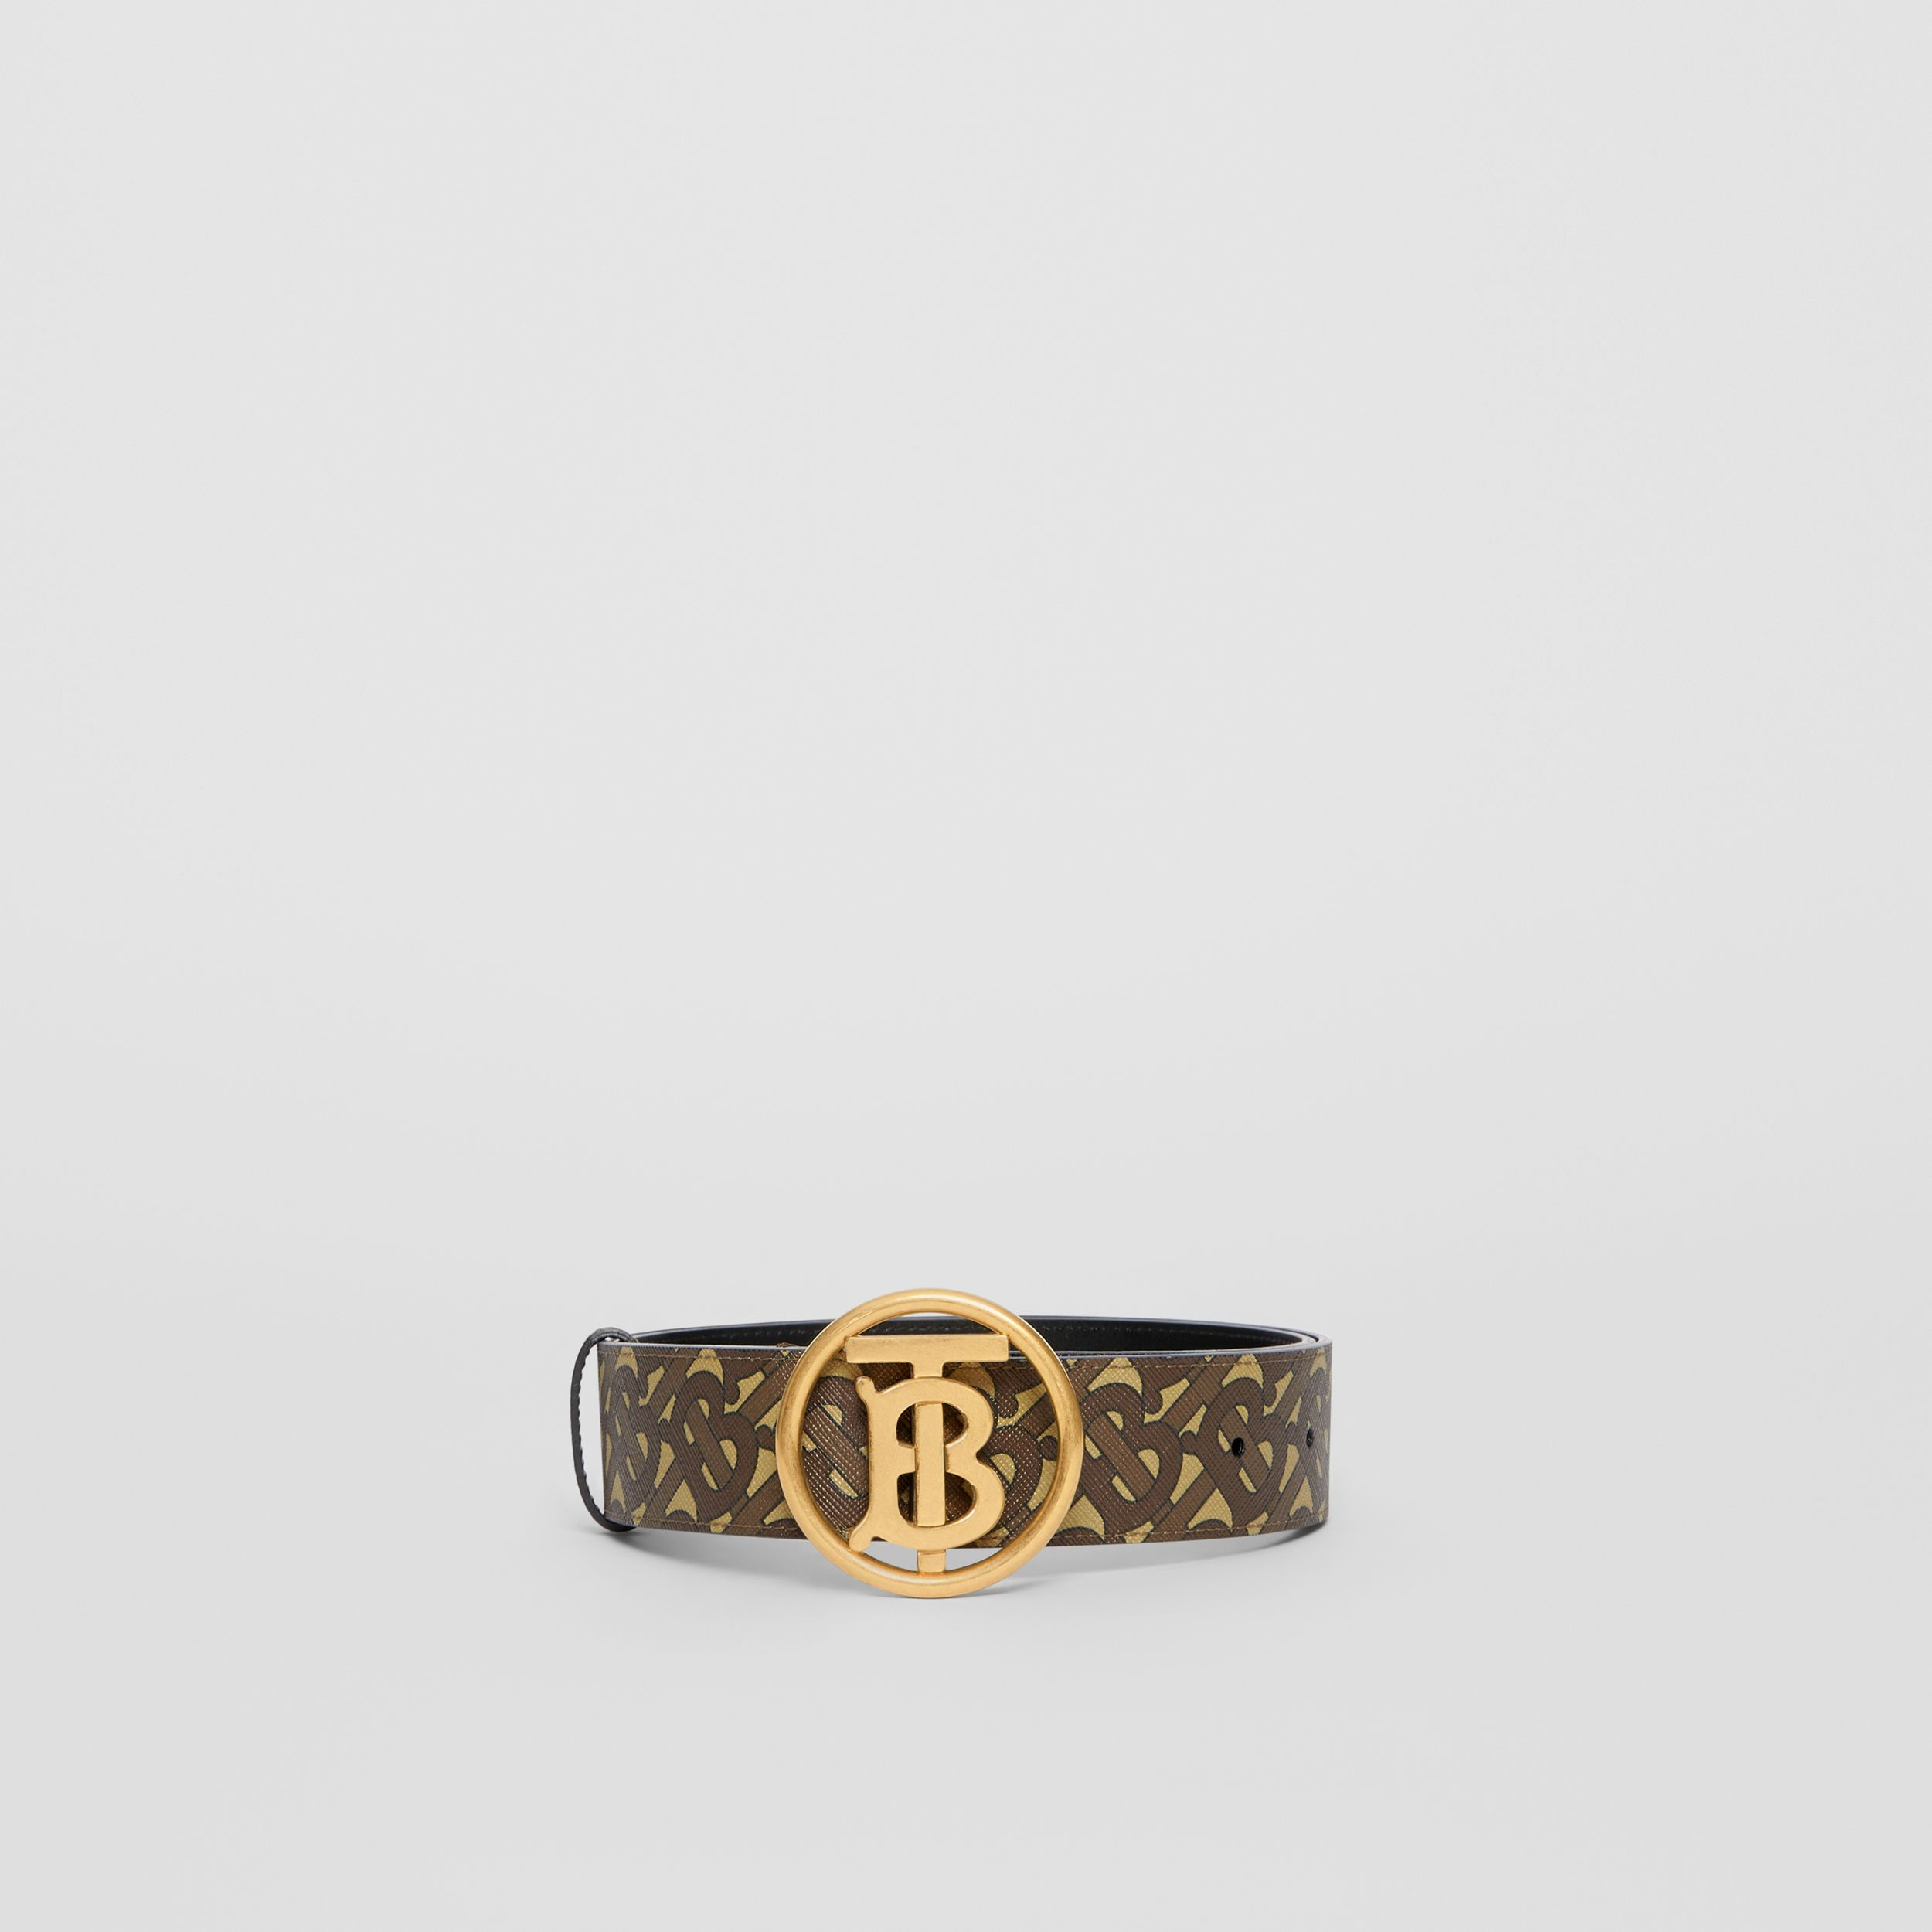 Monogram Motif Monogram Print E-canvas Belt in Bridle Brown - Women | Burberry Australia - 4